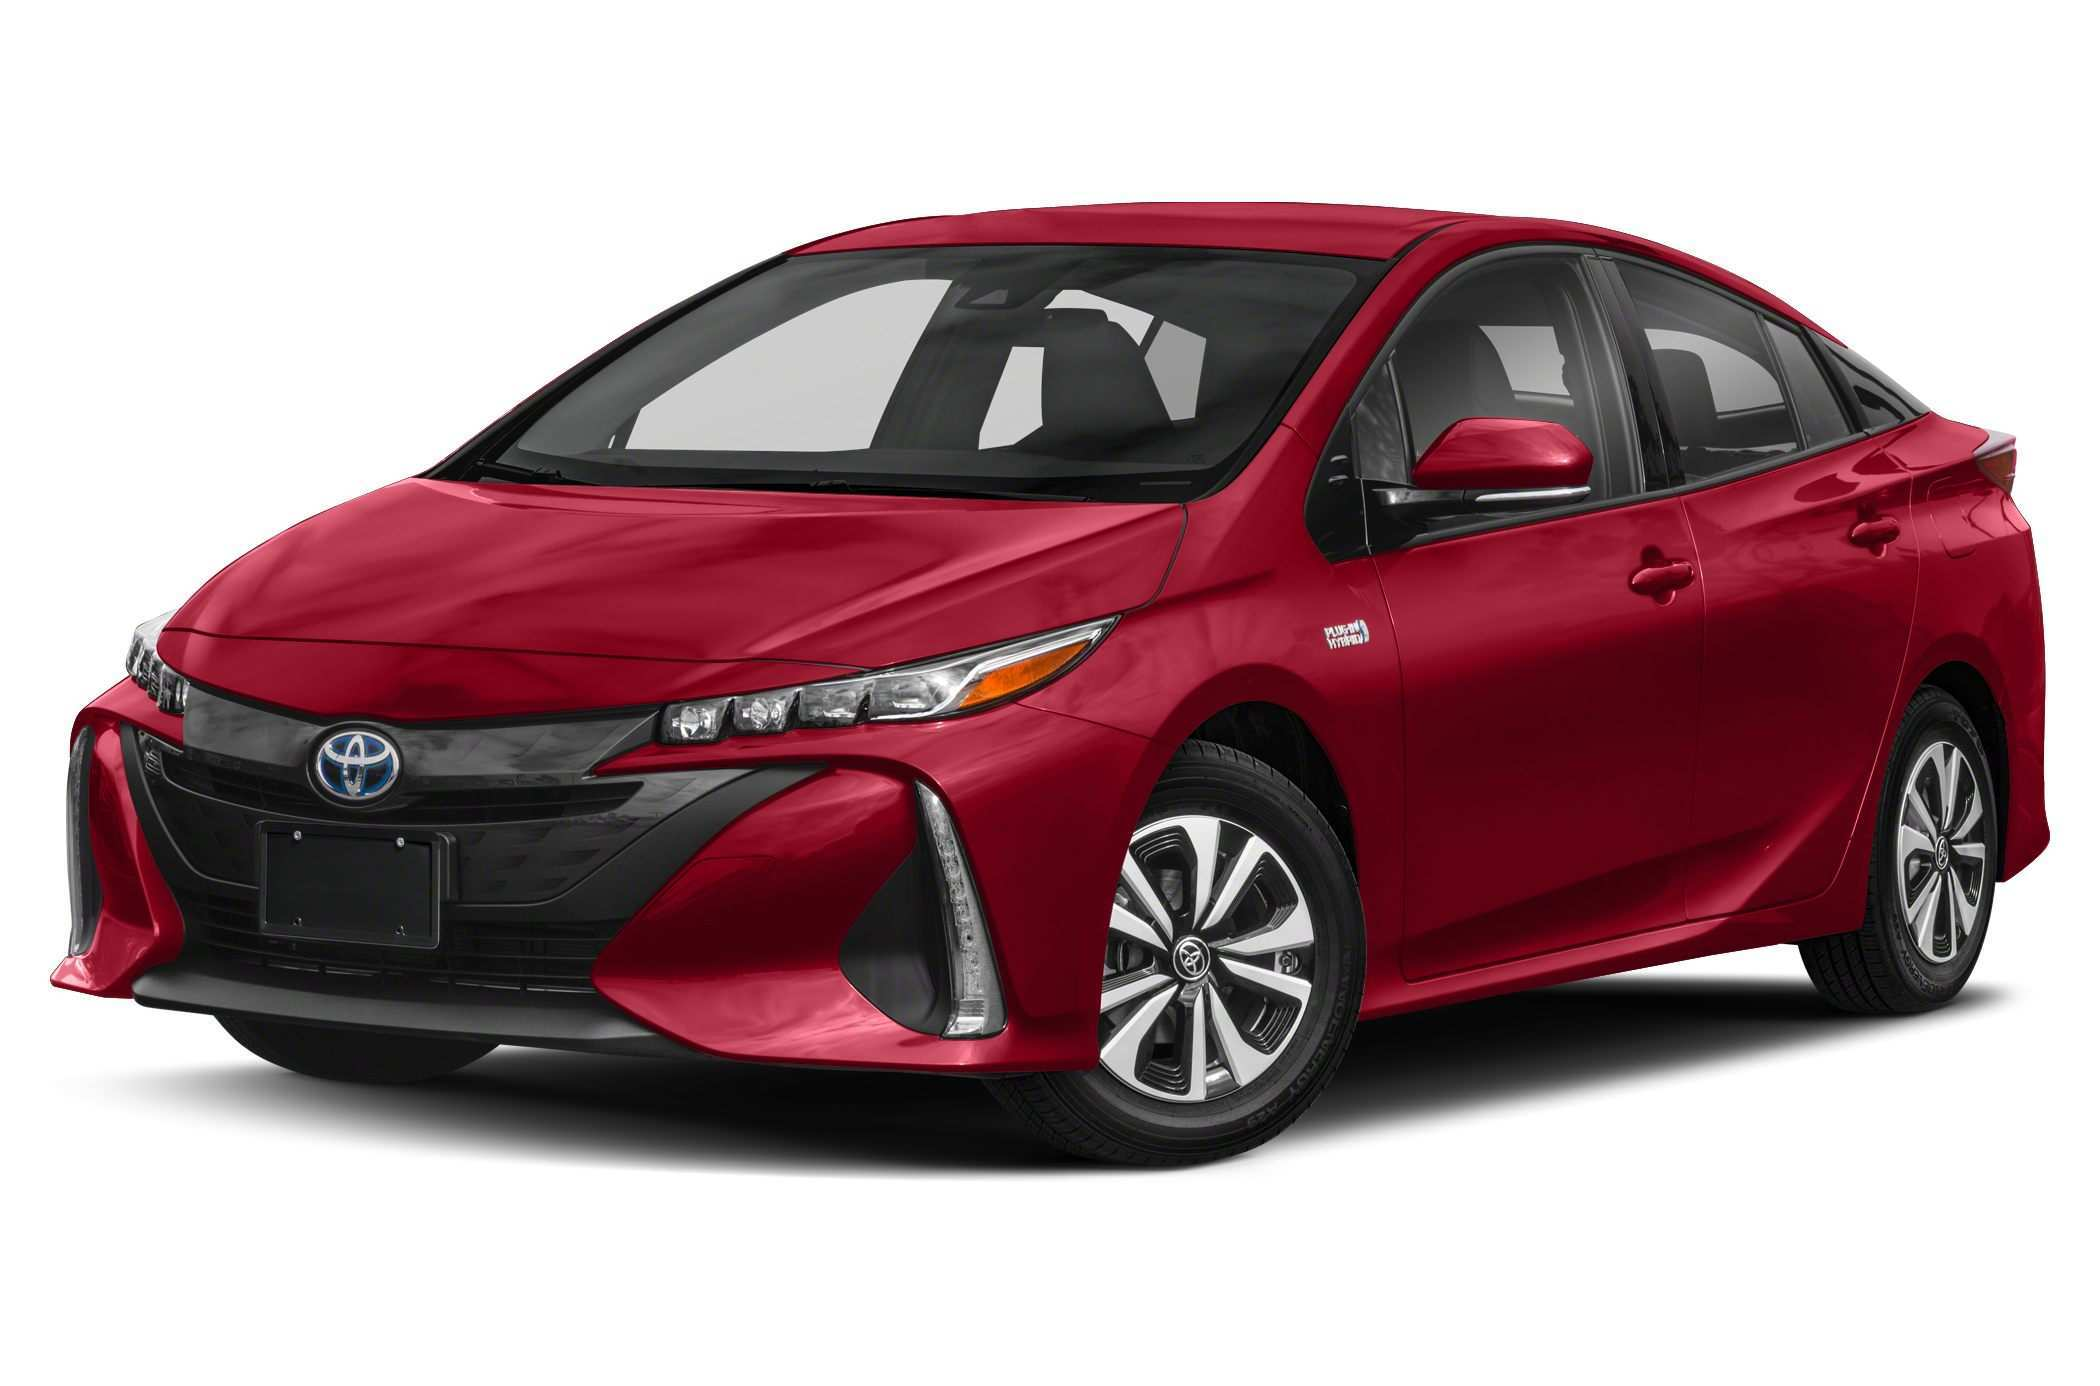 49 Gallery of Toyota Prius Prime 2020 Images for Toyota Prius Prime 2020